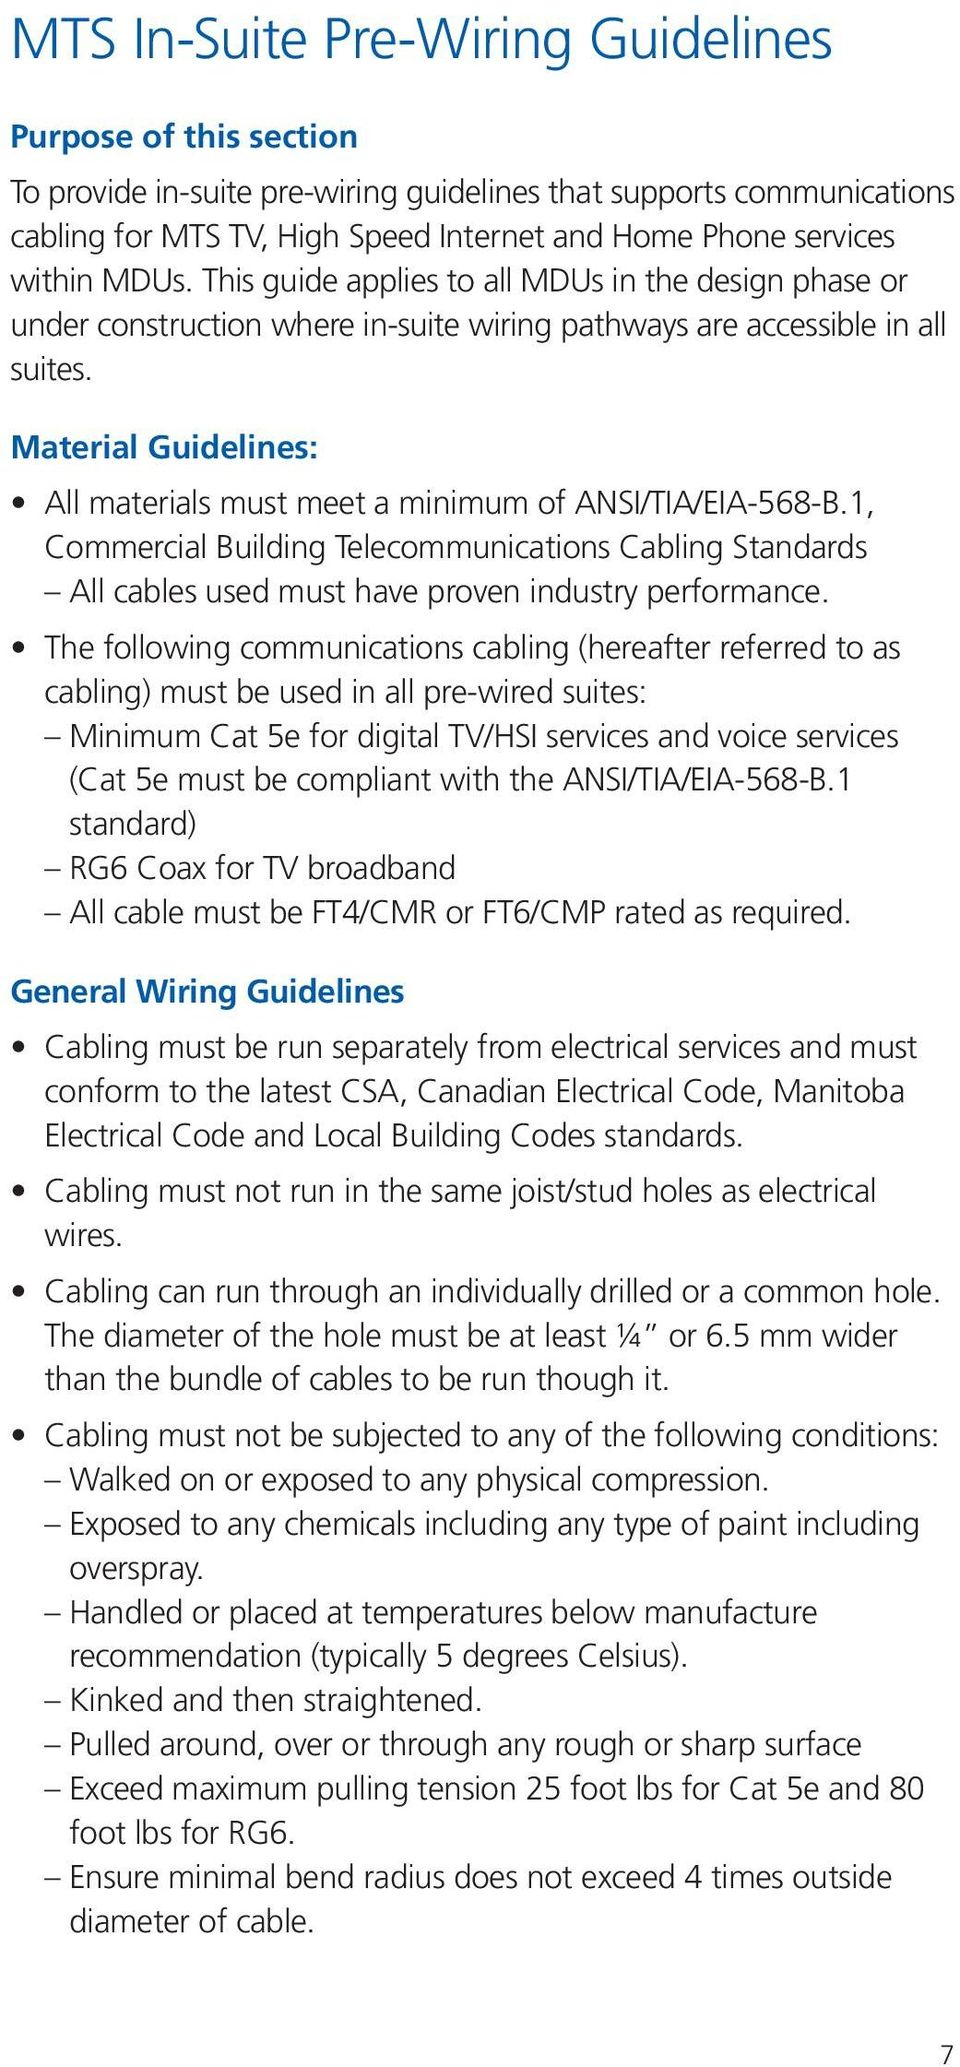 Material Guidelines: All materials must meet a minimum of ANSI/TIA/EIA-568-B.1, Commercial Building Telecommunications Cabling Standards All cables used must have proven industry performance.